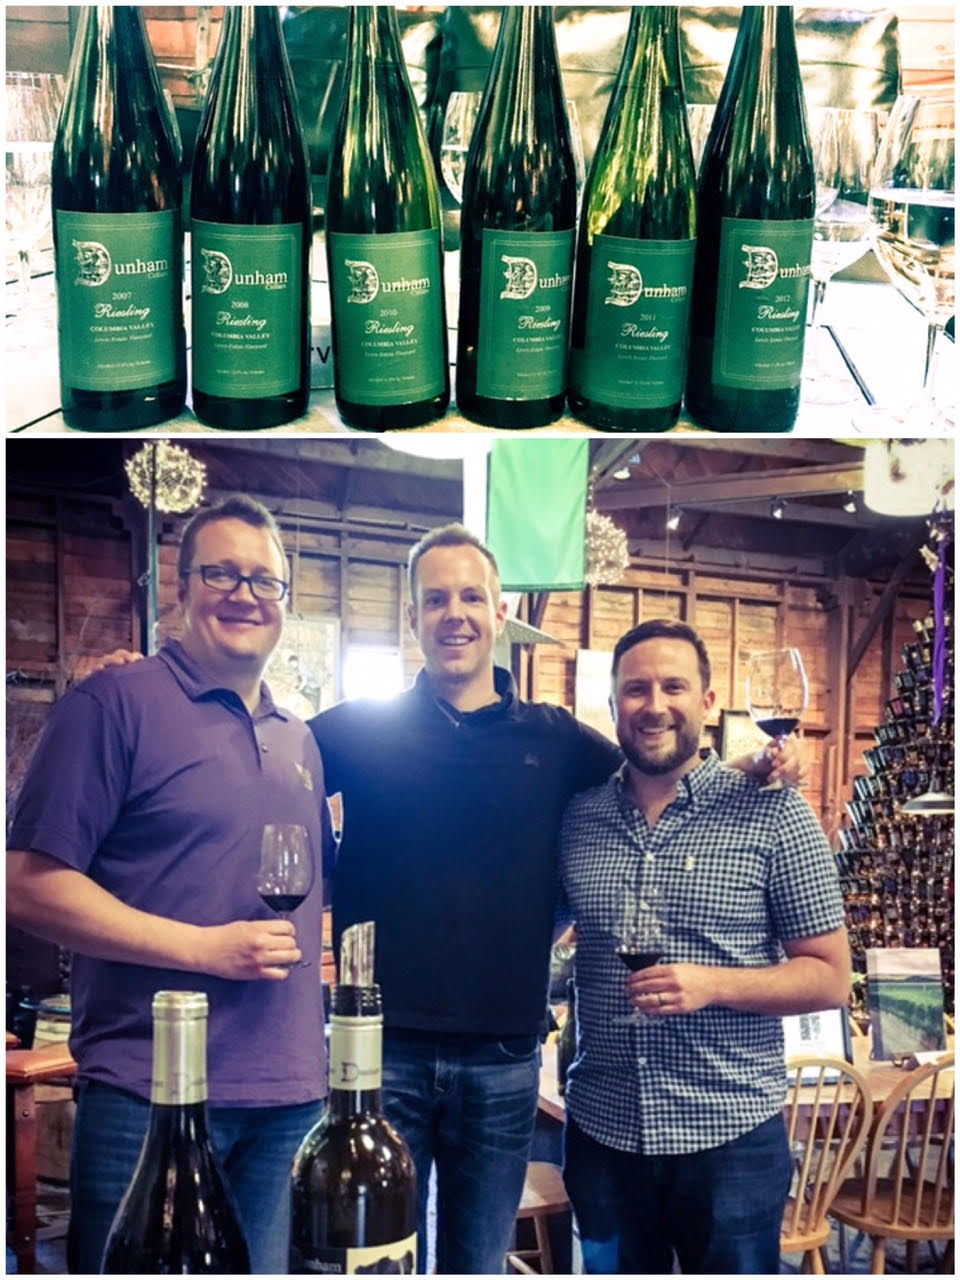 We had a fantastic time at our new release and Riesling retrospective tastings at Dunham Cellars. I'm pictured here with Dunham GM John Blair (L) as well as Dunham head winemaker Tyler Tennyson (R).